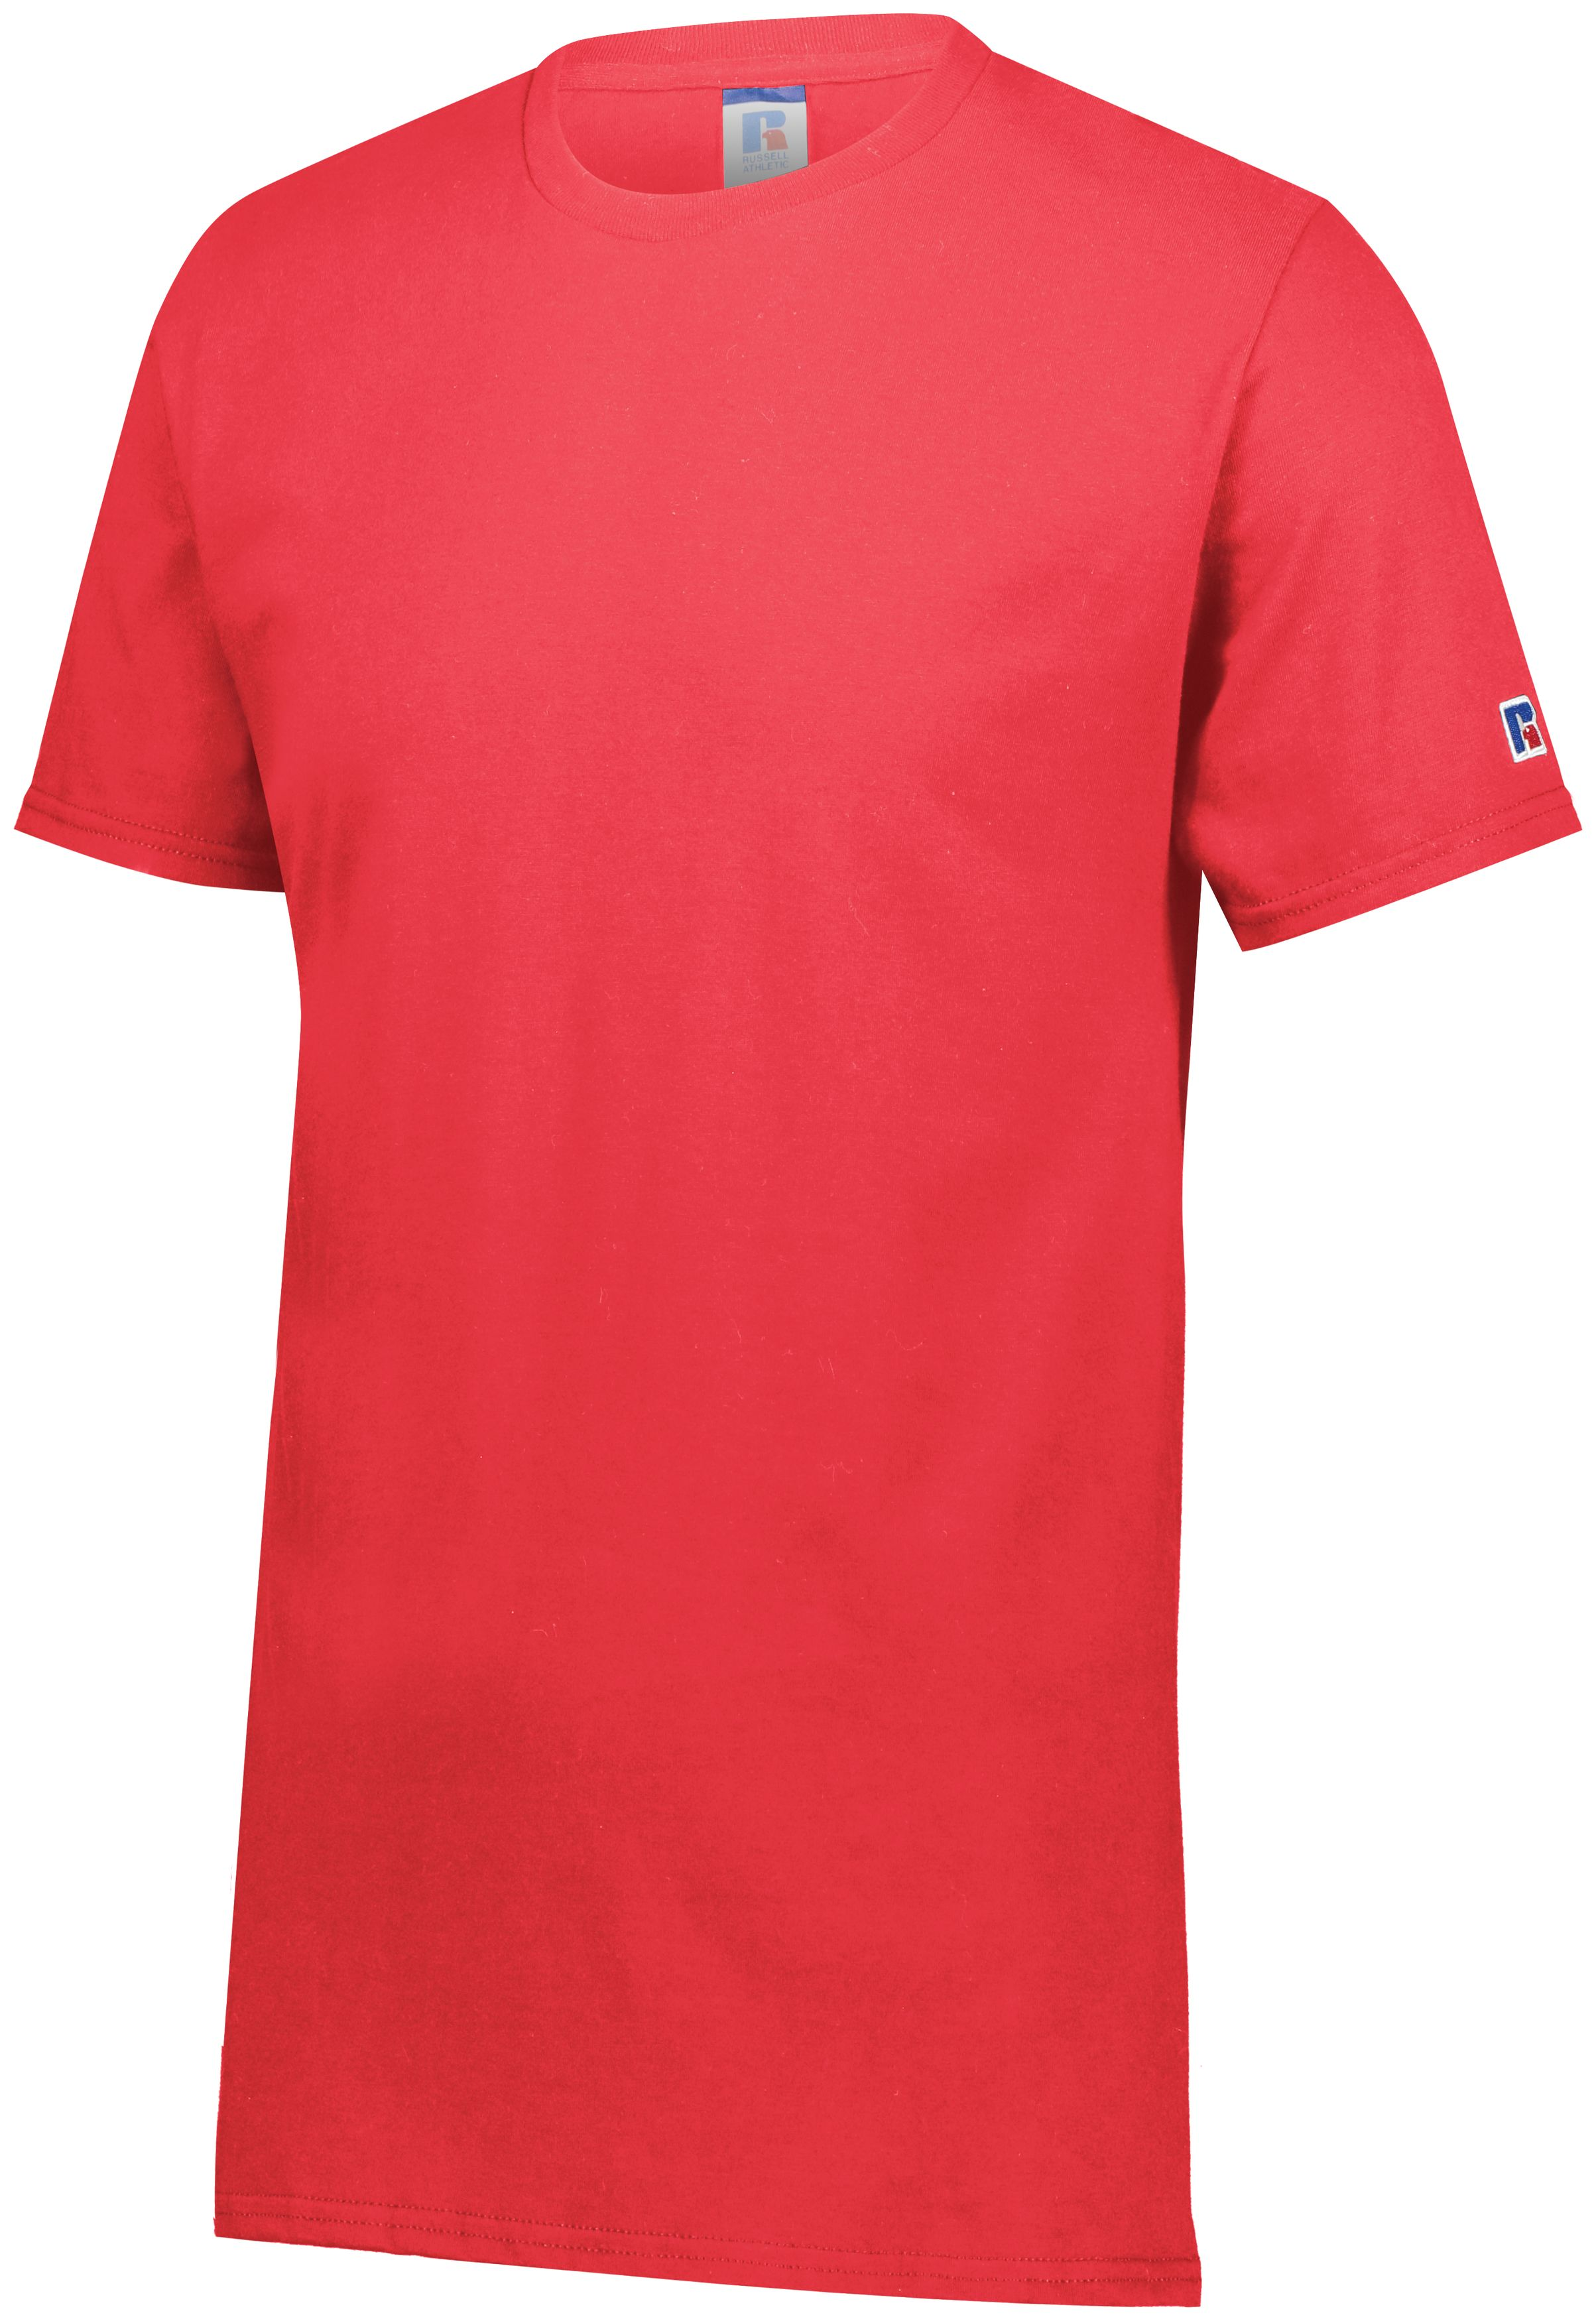 Cotton Classic Tee - TRUE RED